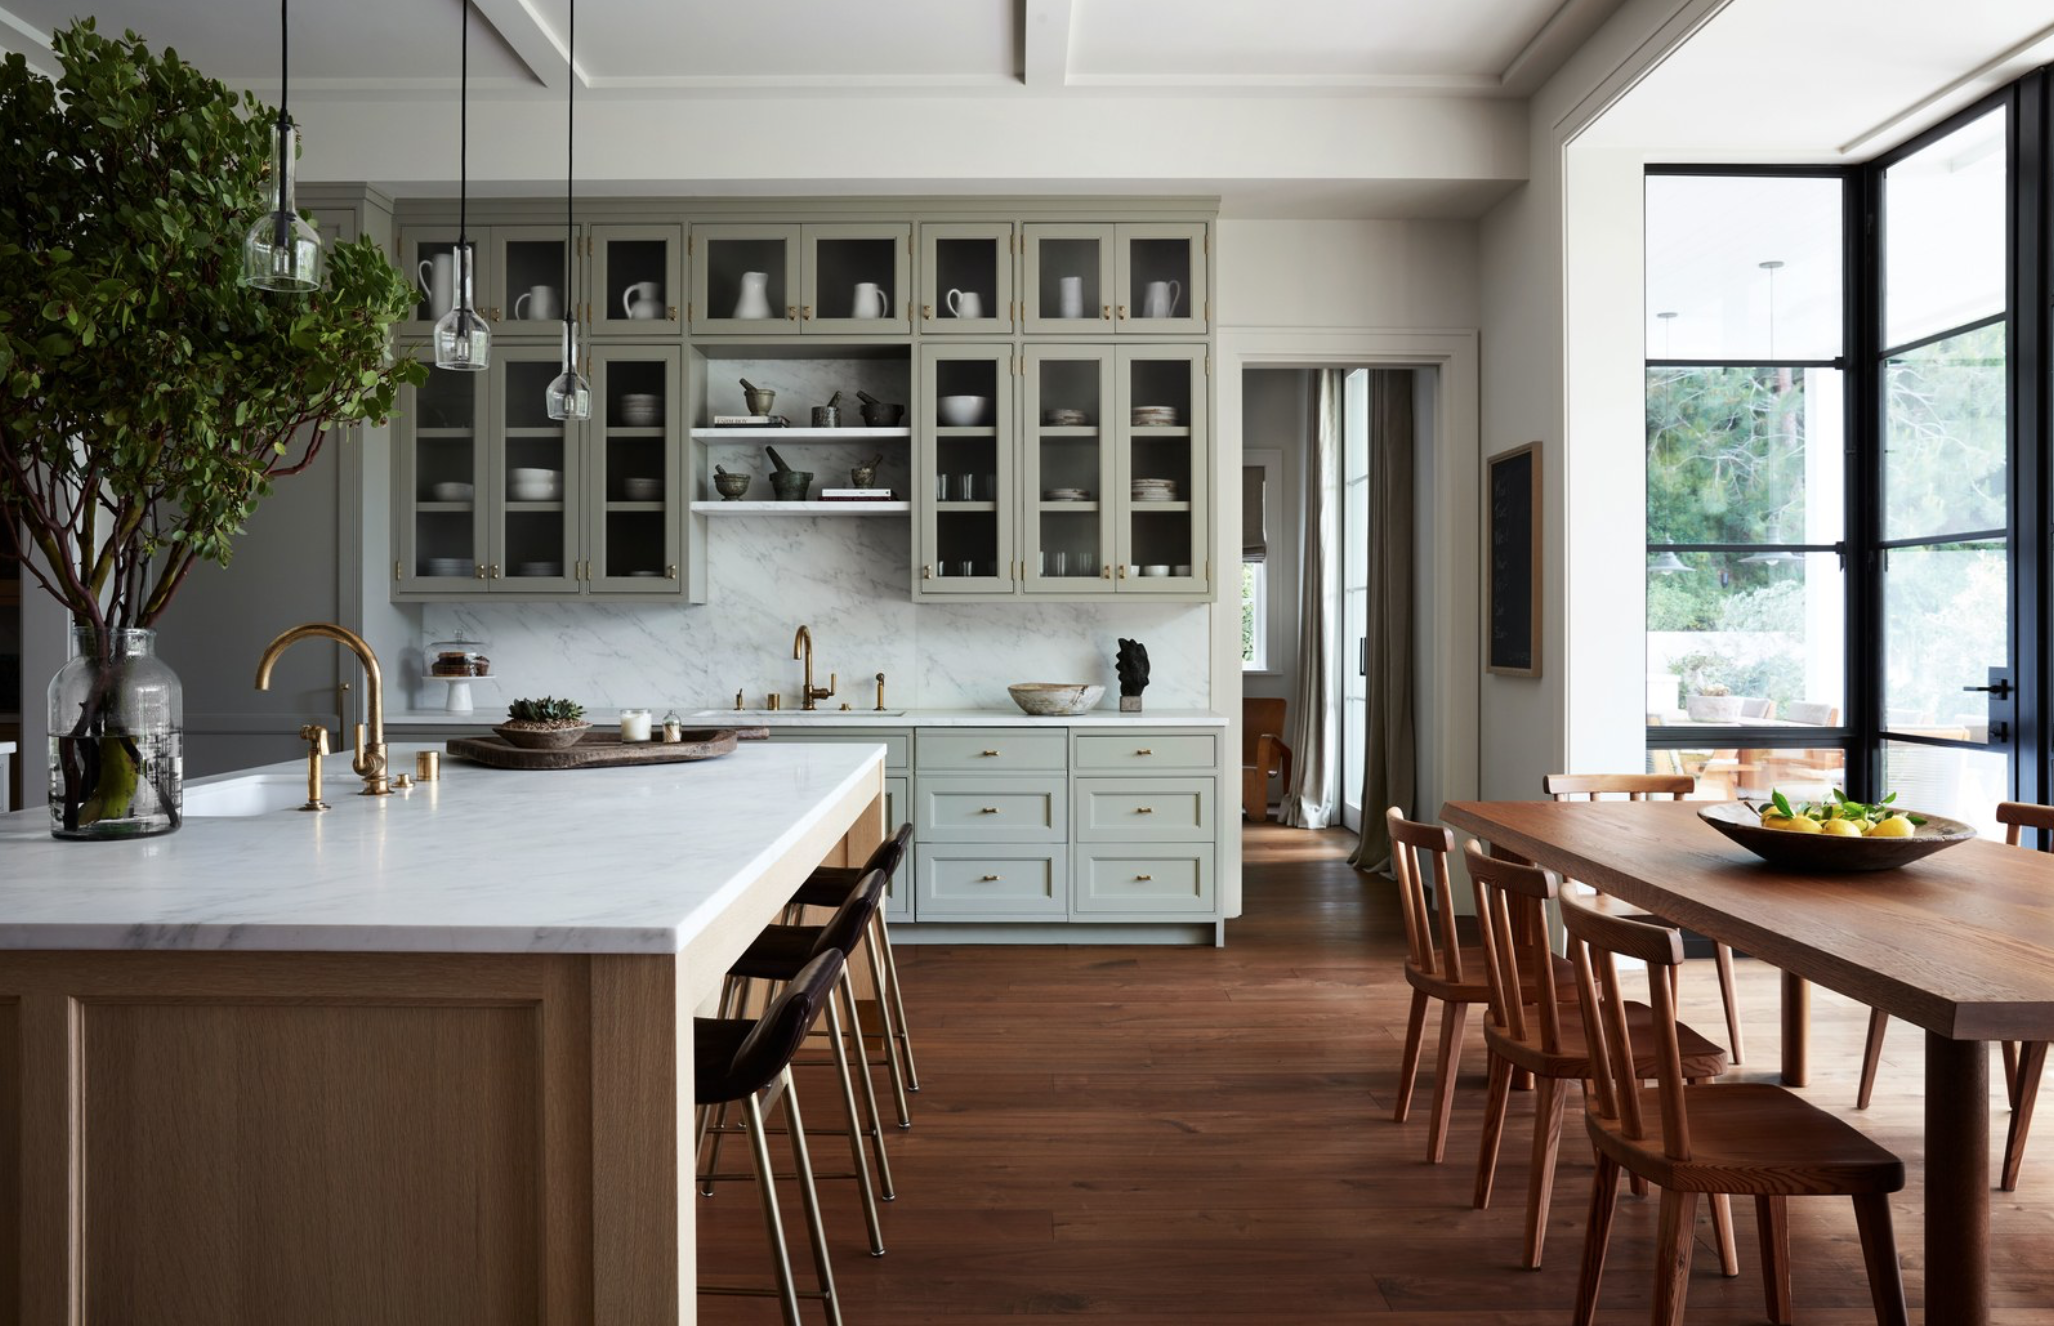 A stunning eat-in kitchen designed by architect  William Hefner  was featured on  Architectural Digest online . Photograph by  Stephen Kent Johnson